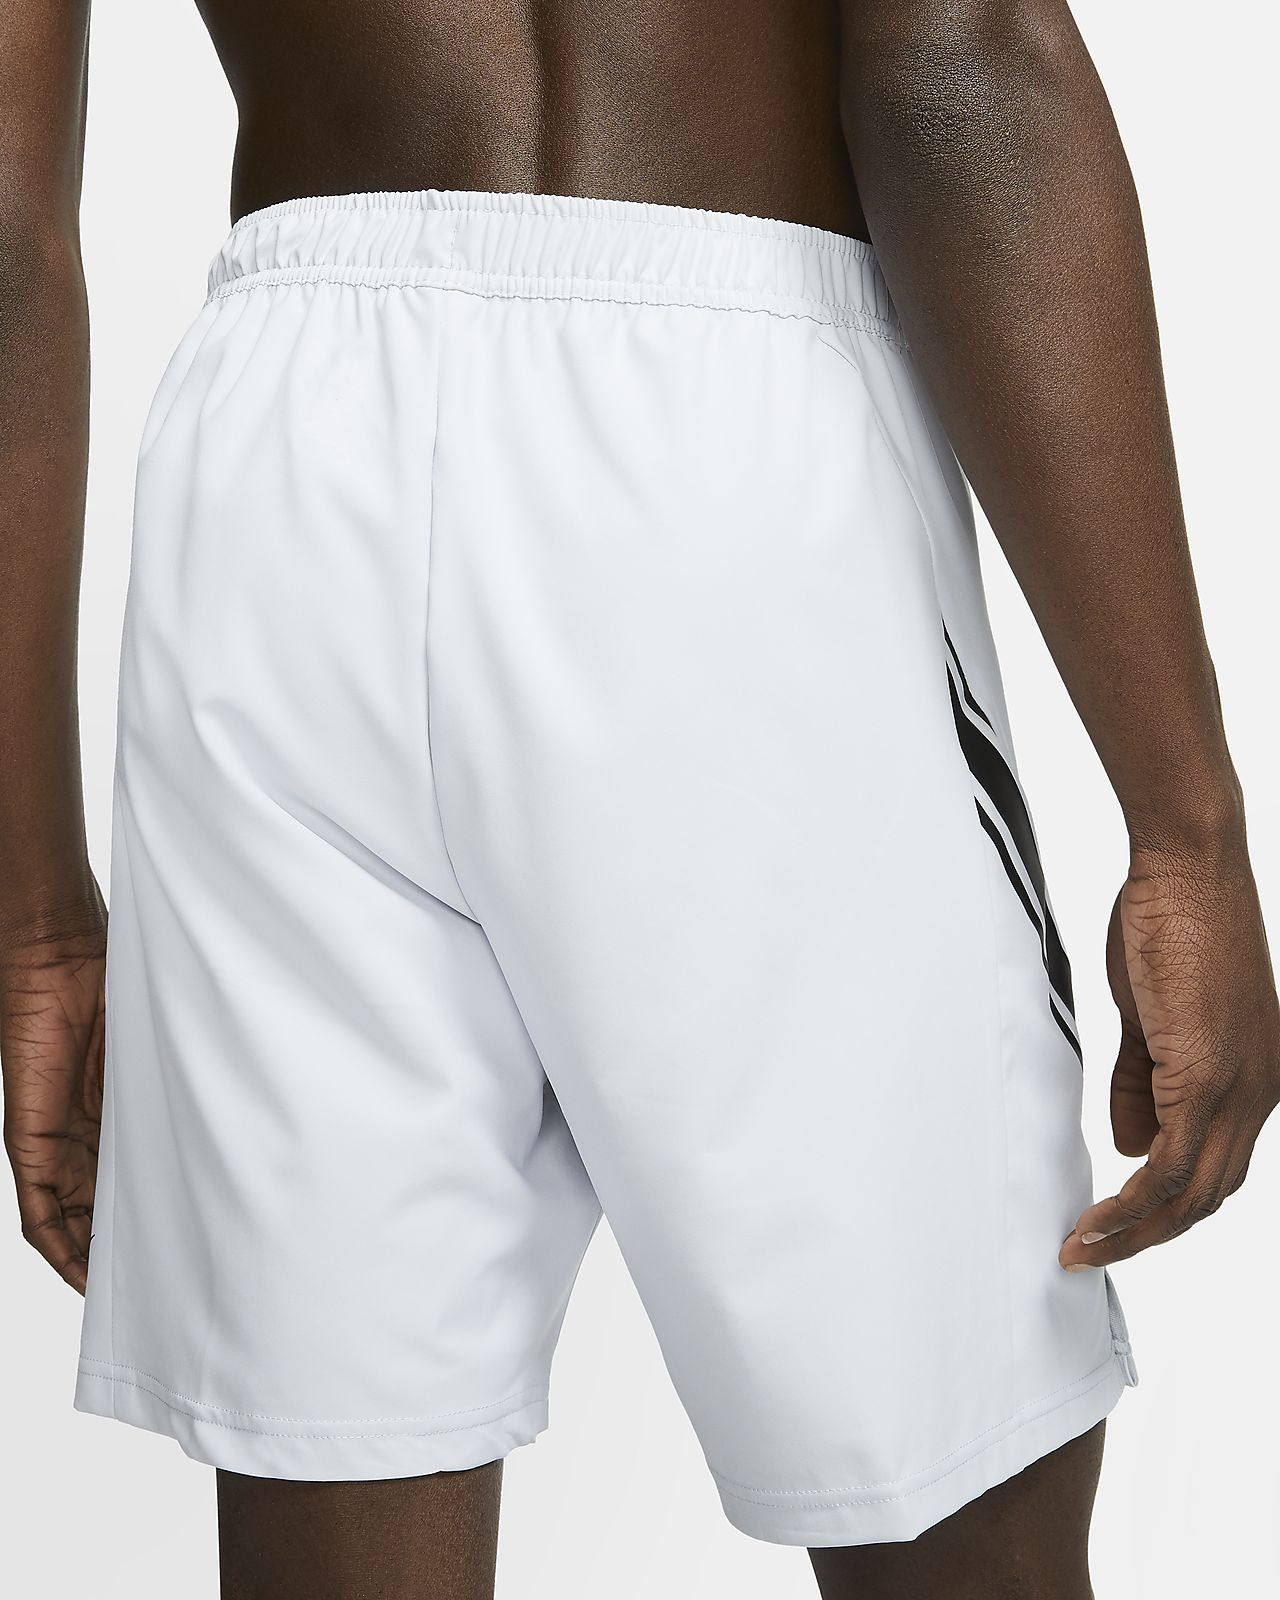 nike 9 compression shorts